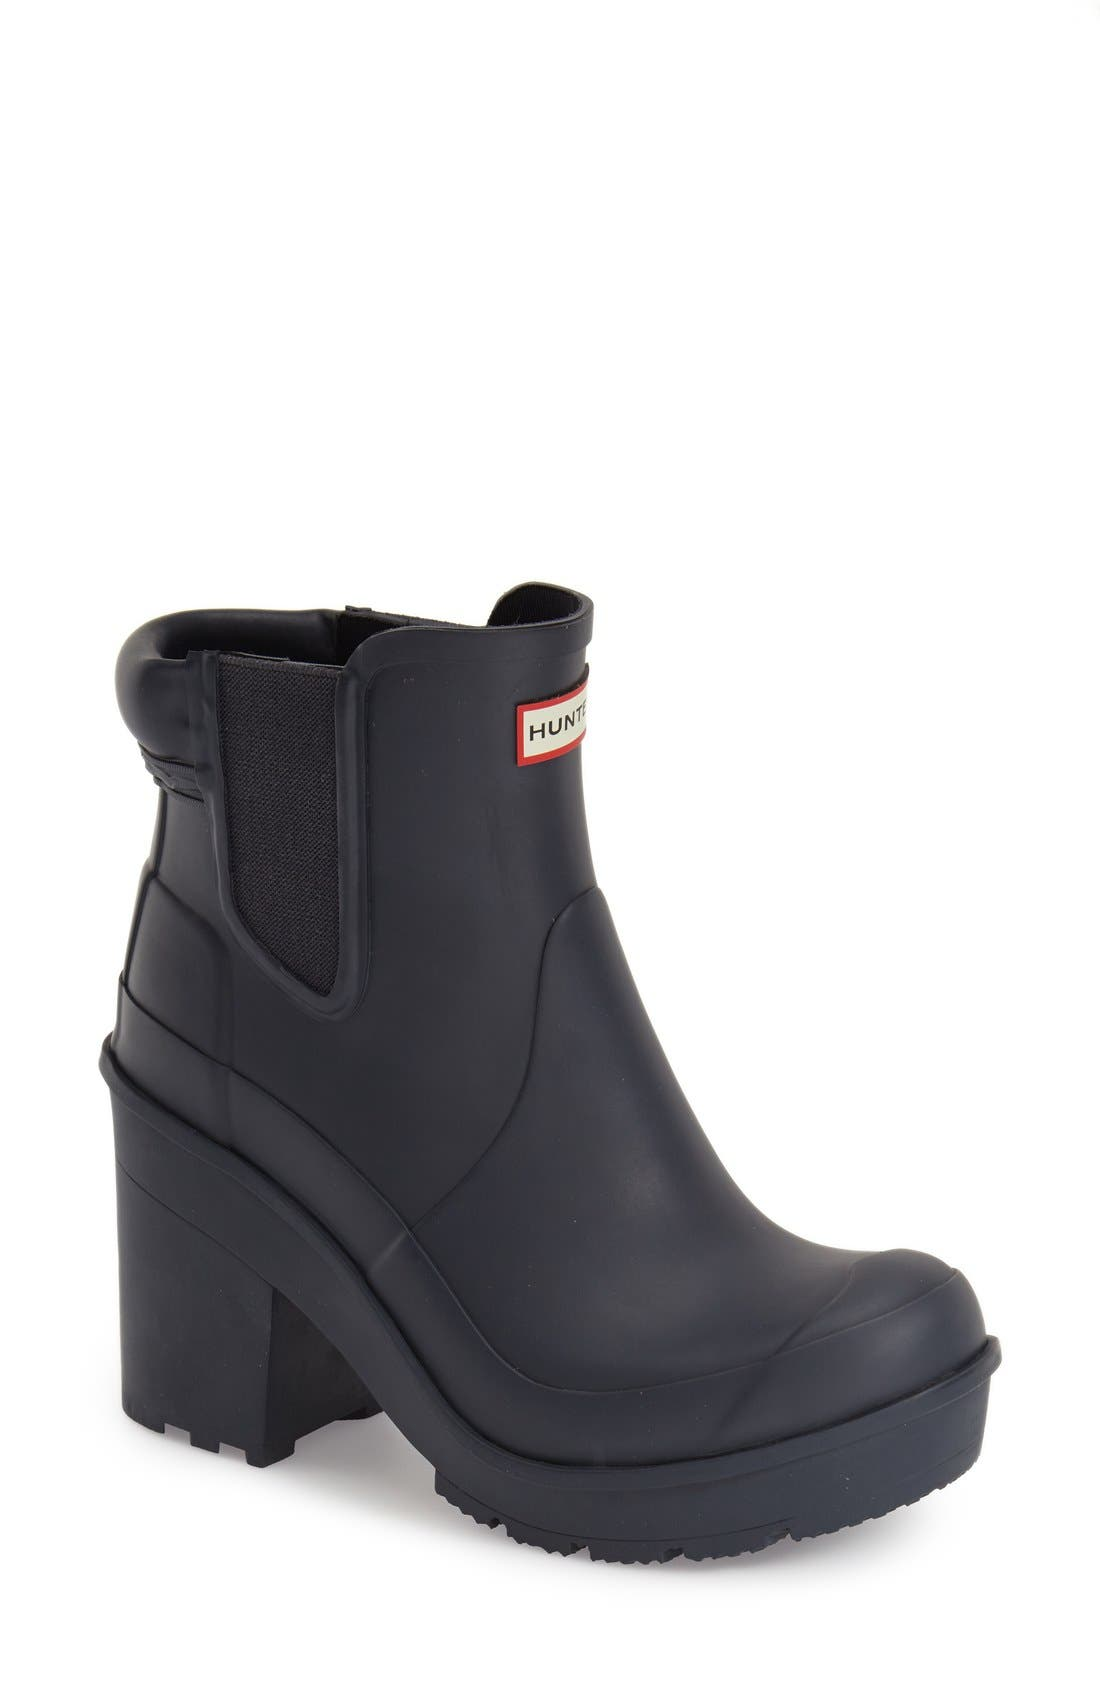 Main Image - Hunter 'Original - Block Heel' Chelsea Rain Boot (Women)